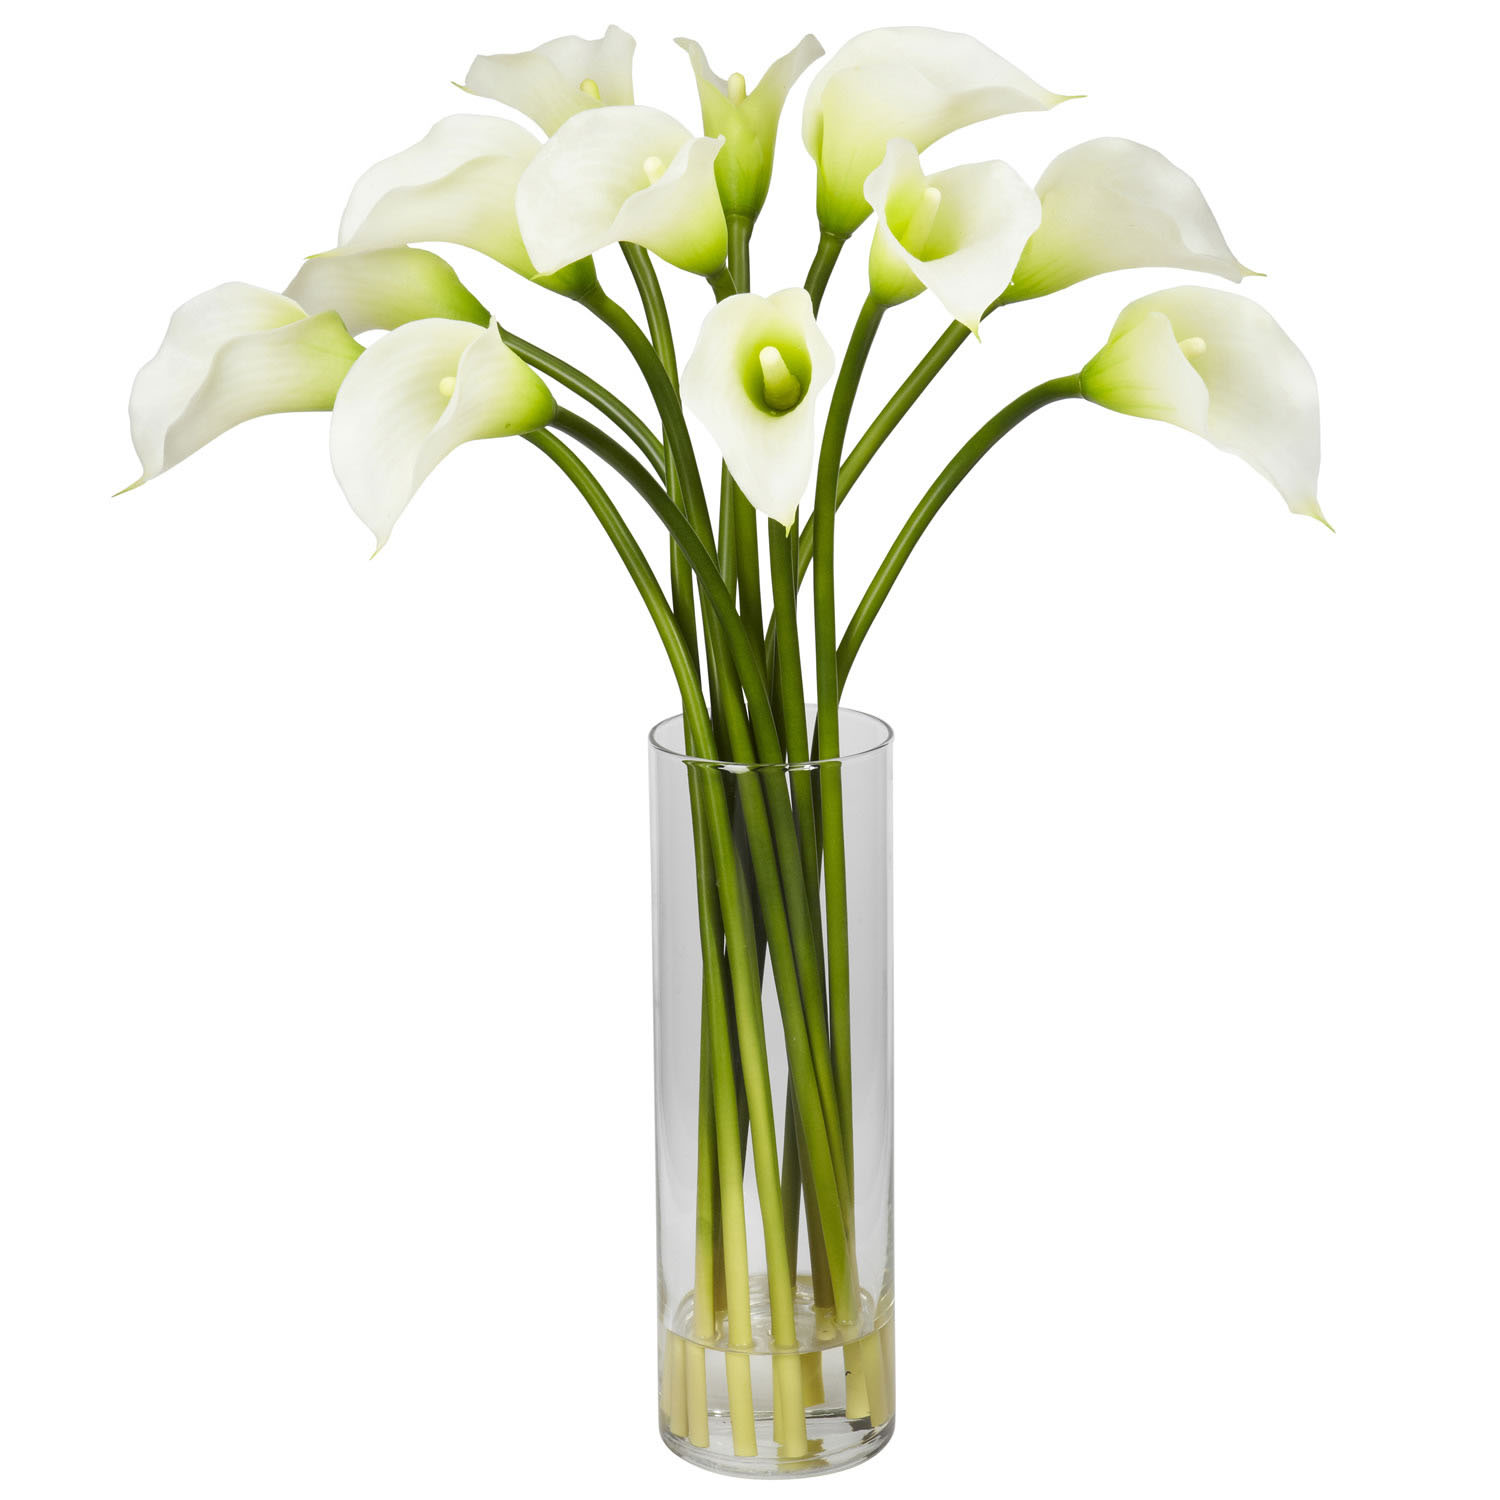 Acrylic water acrylic flowers fake water for vase mini calla lily arrangement in vase mightylinksfo